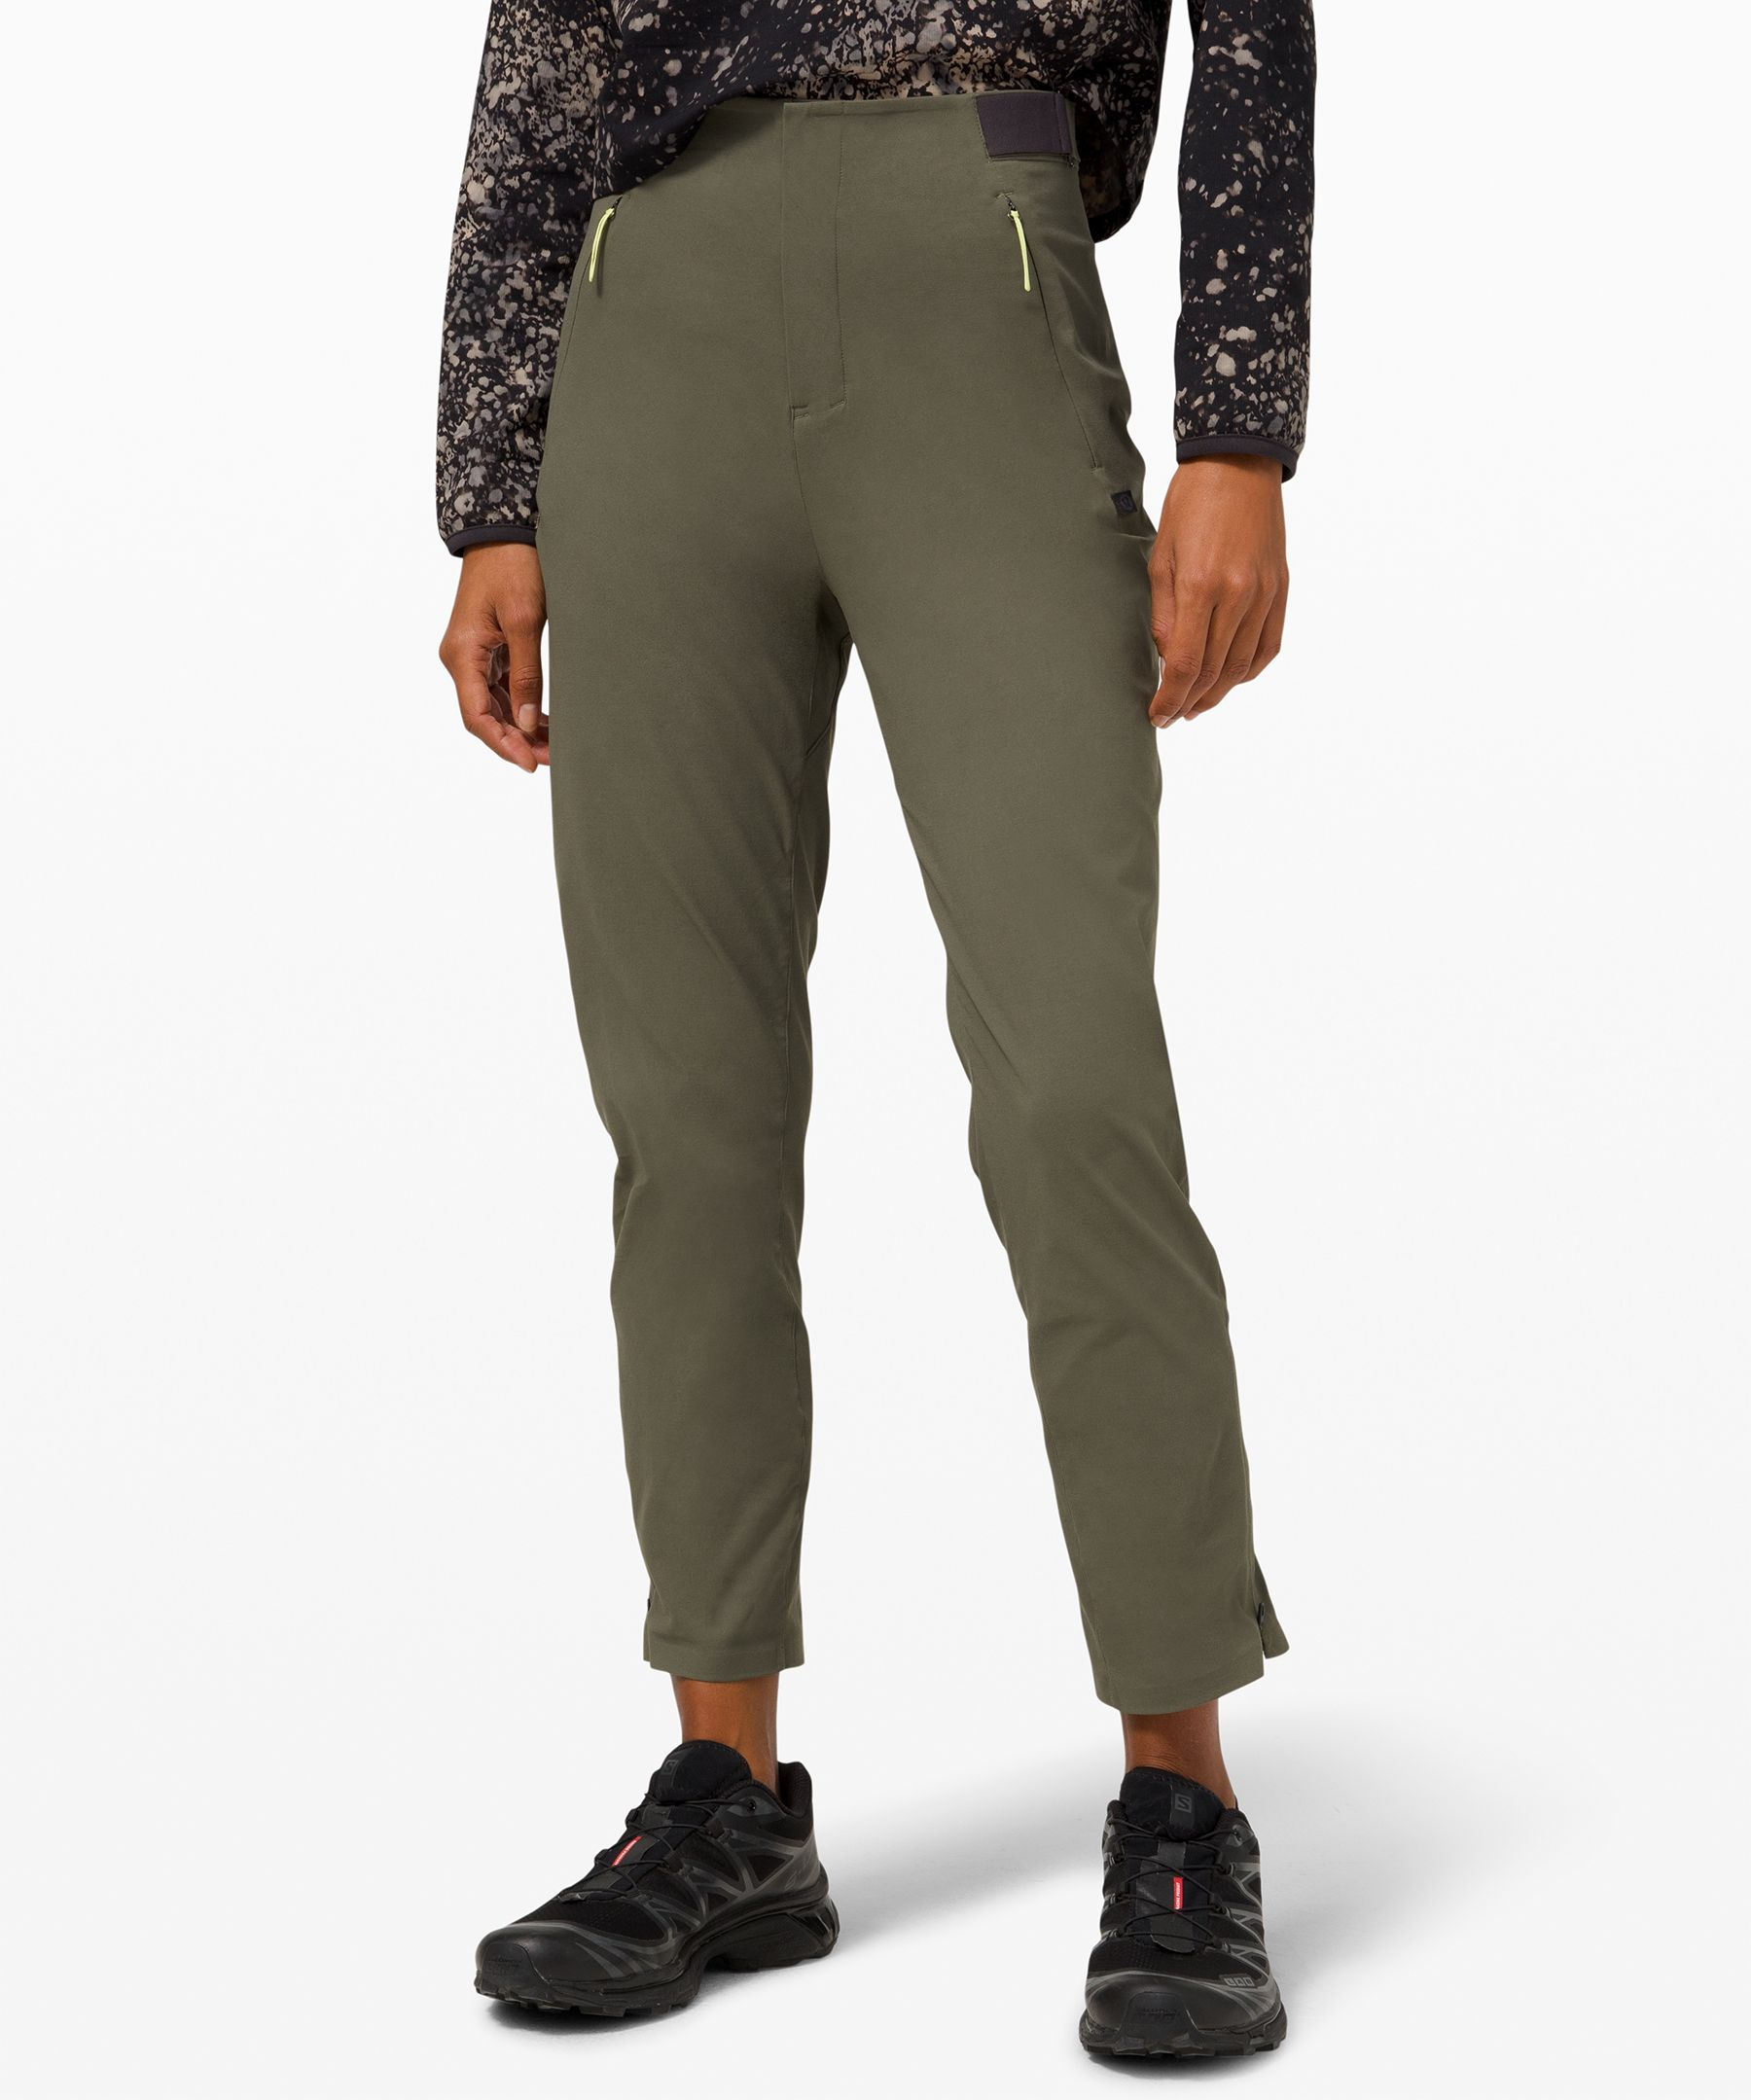 Tolva Cropped Pant *lululemon lab